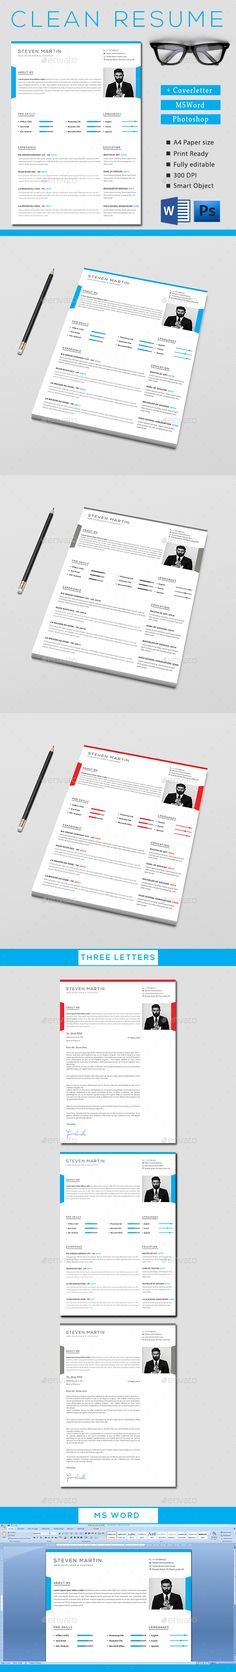 clean resume template psd download here httpgraphicrivernet